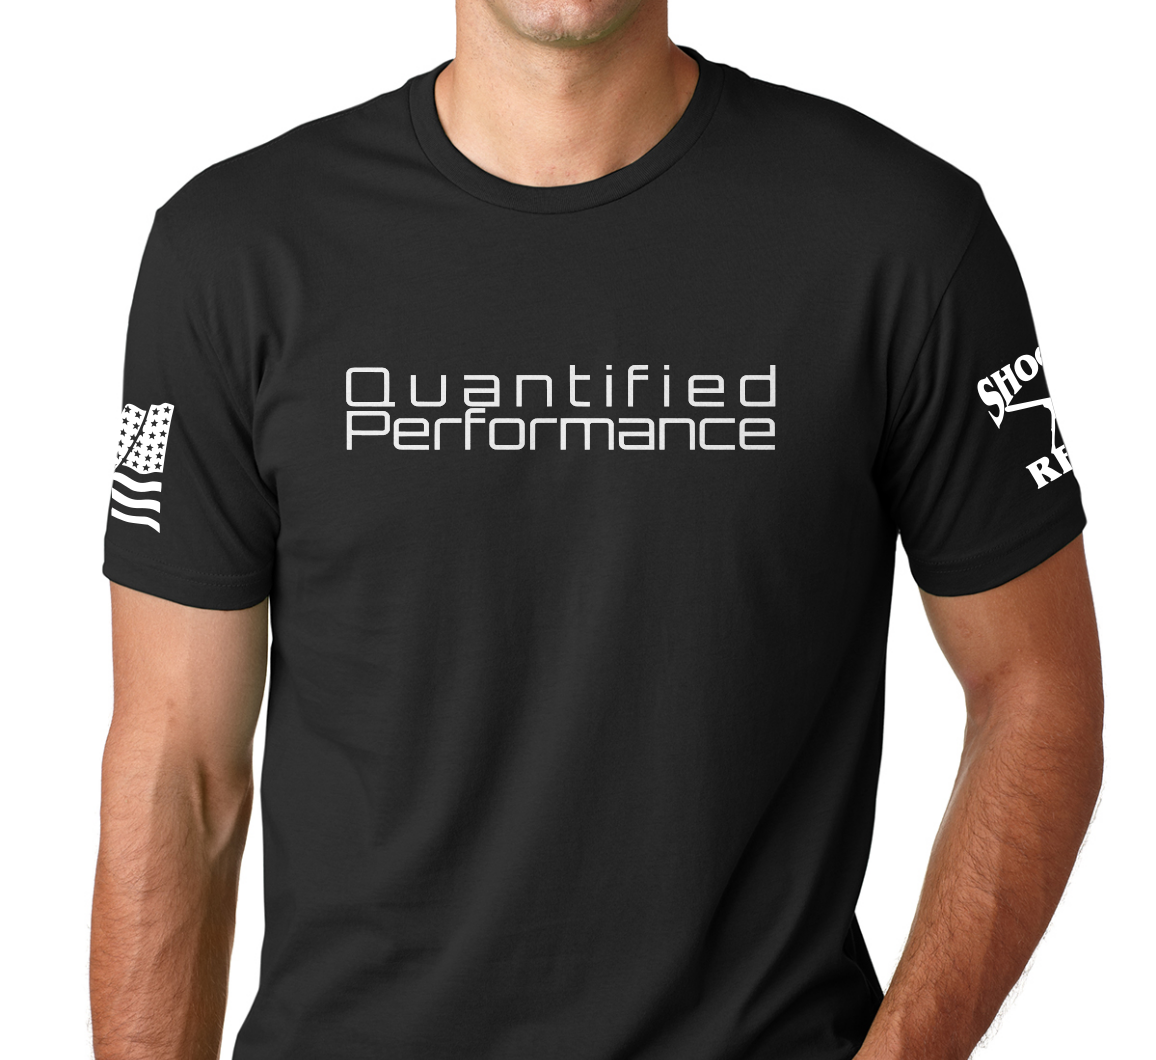 Quantified Performance Shirt